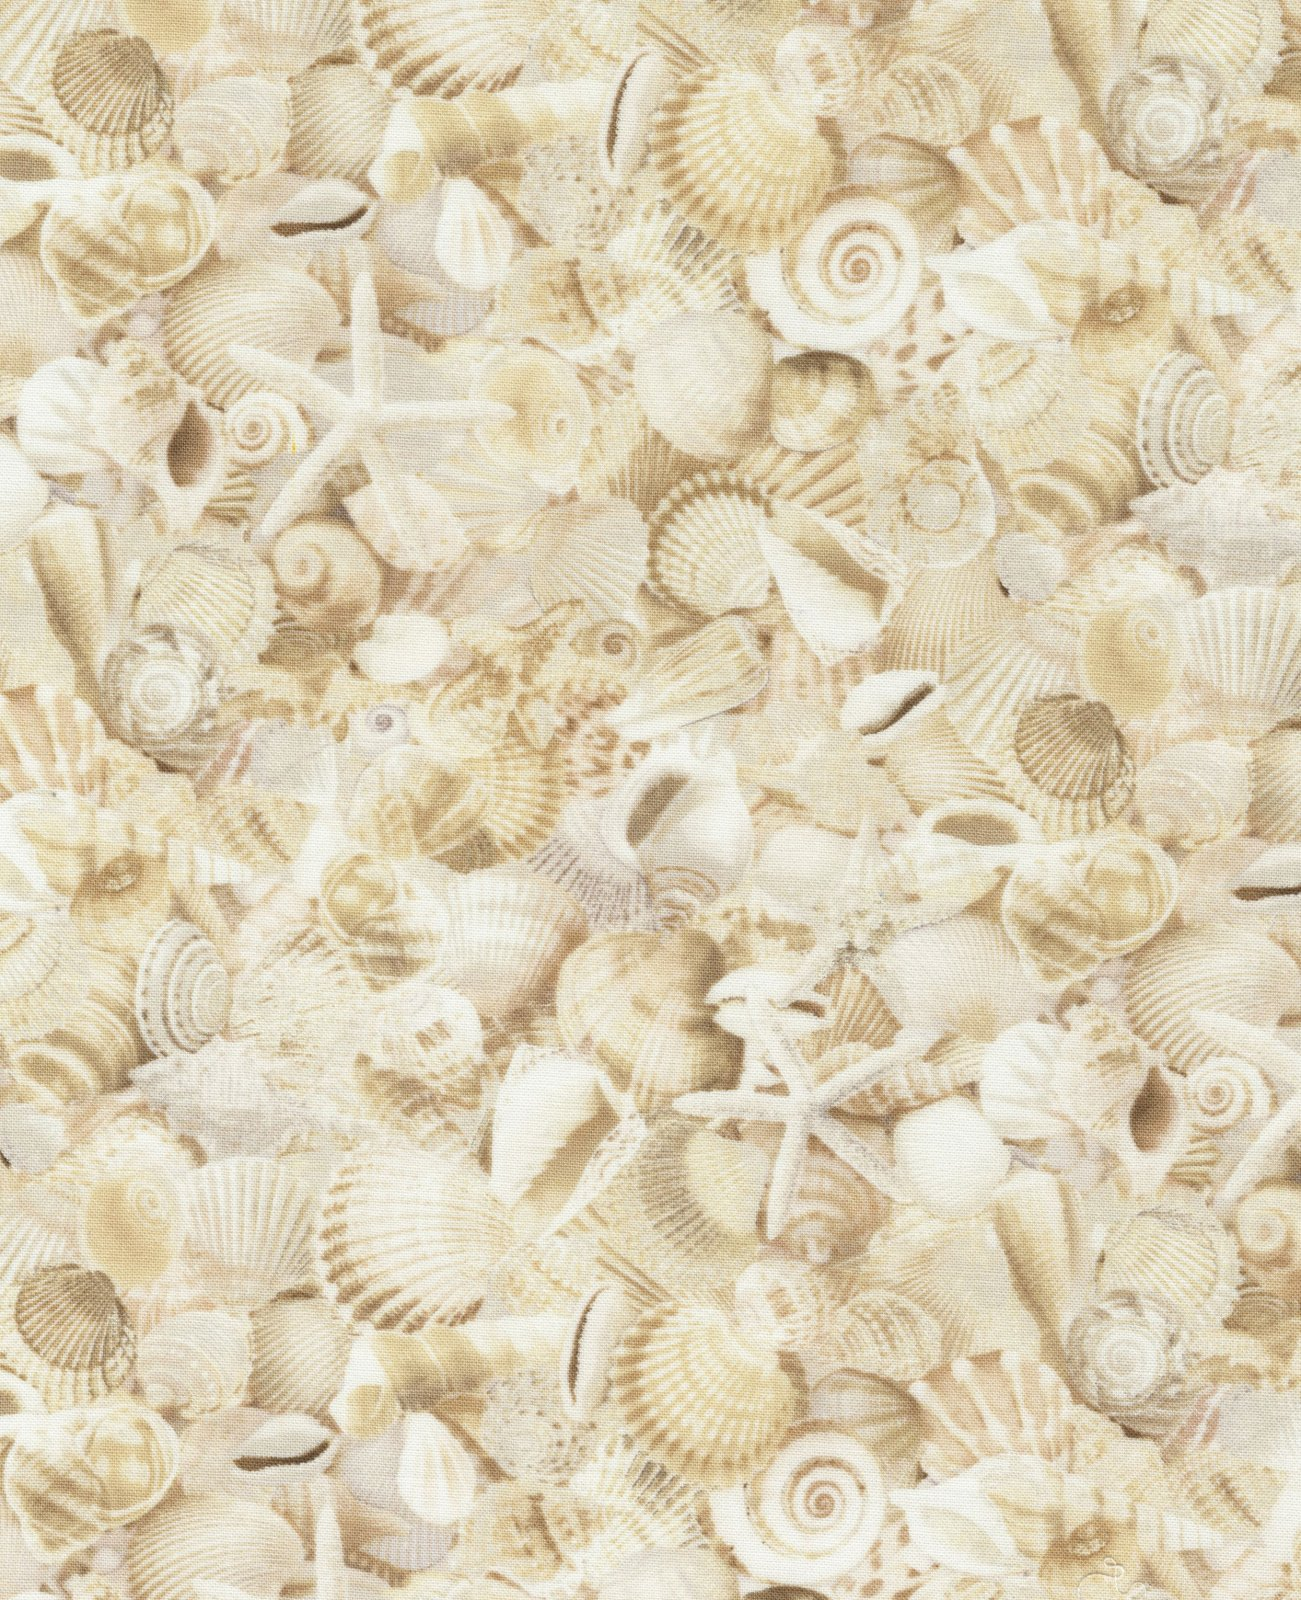 Beach - Packed Seashells